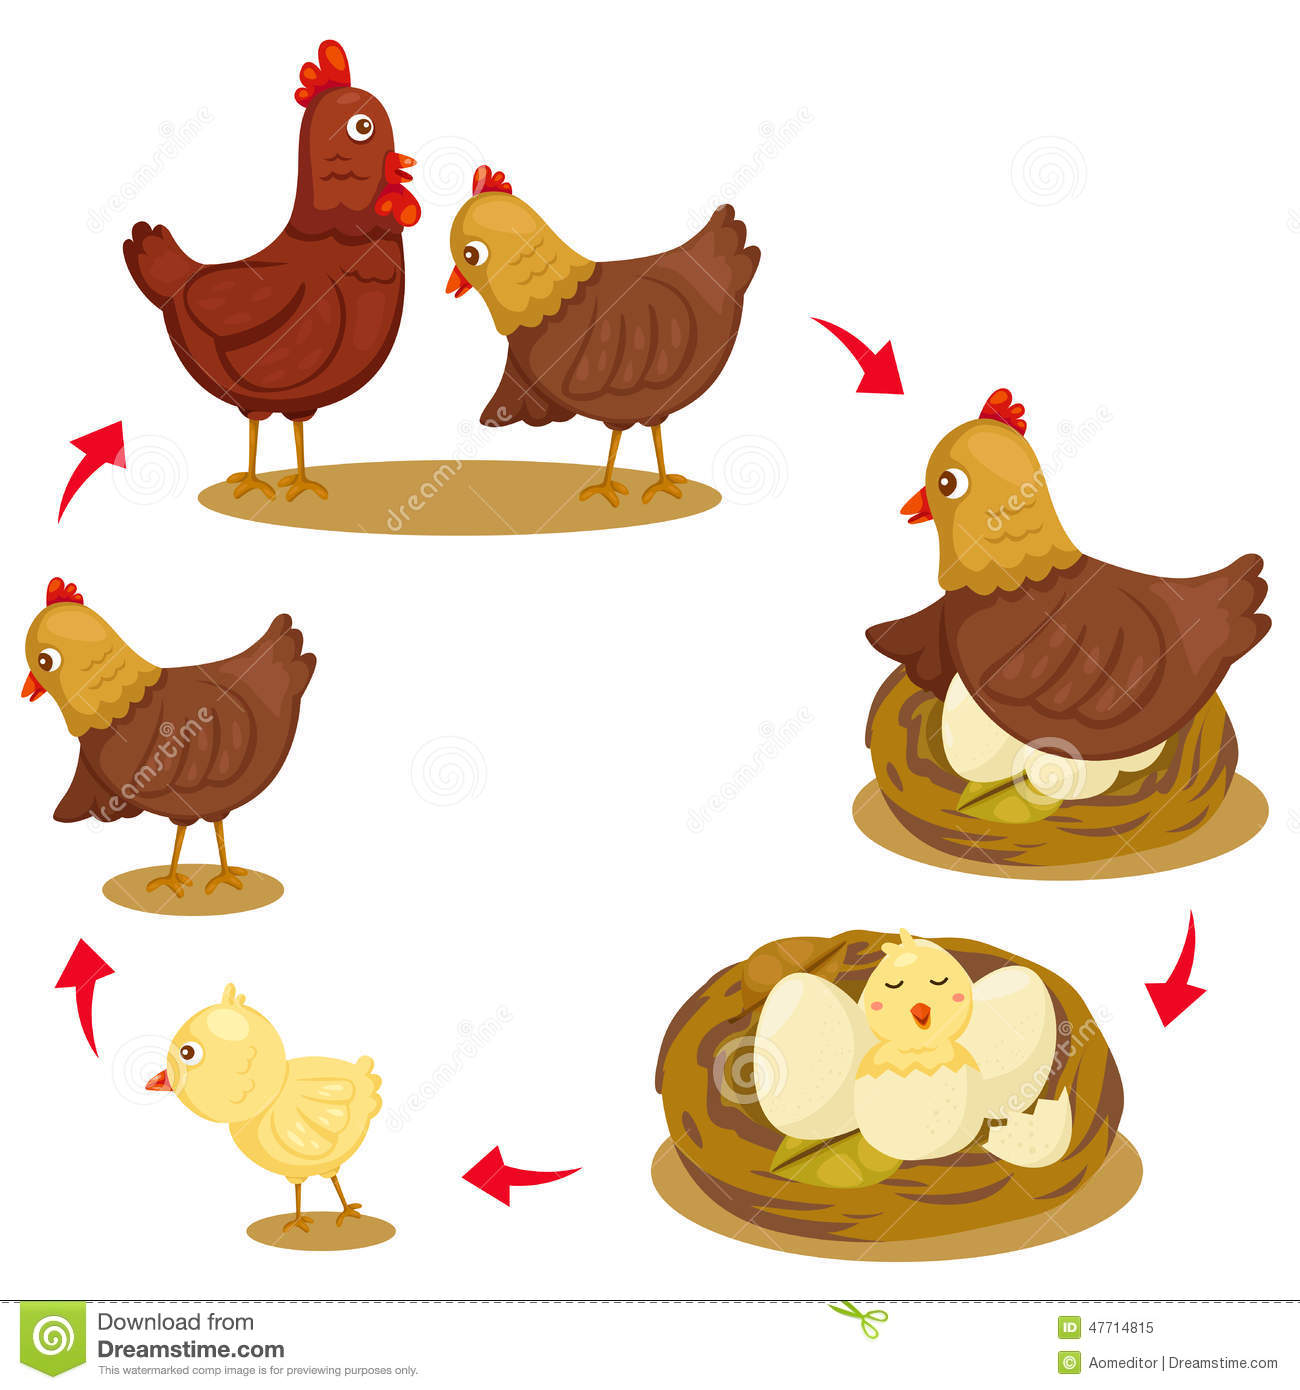 Chicken life cycle clipart clip transparent download Life cycle of a chicken clipart - ClipartFest clip transparent download